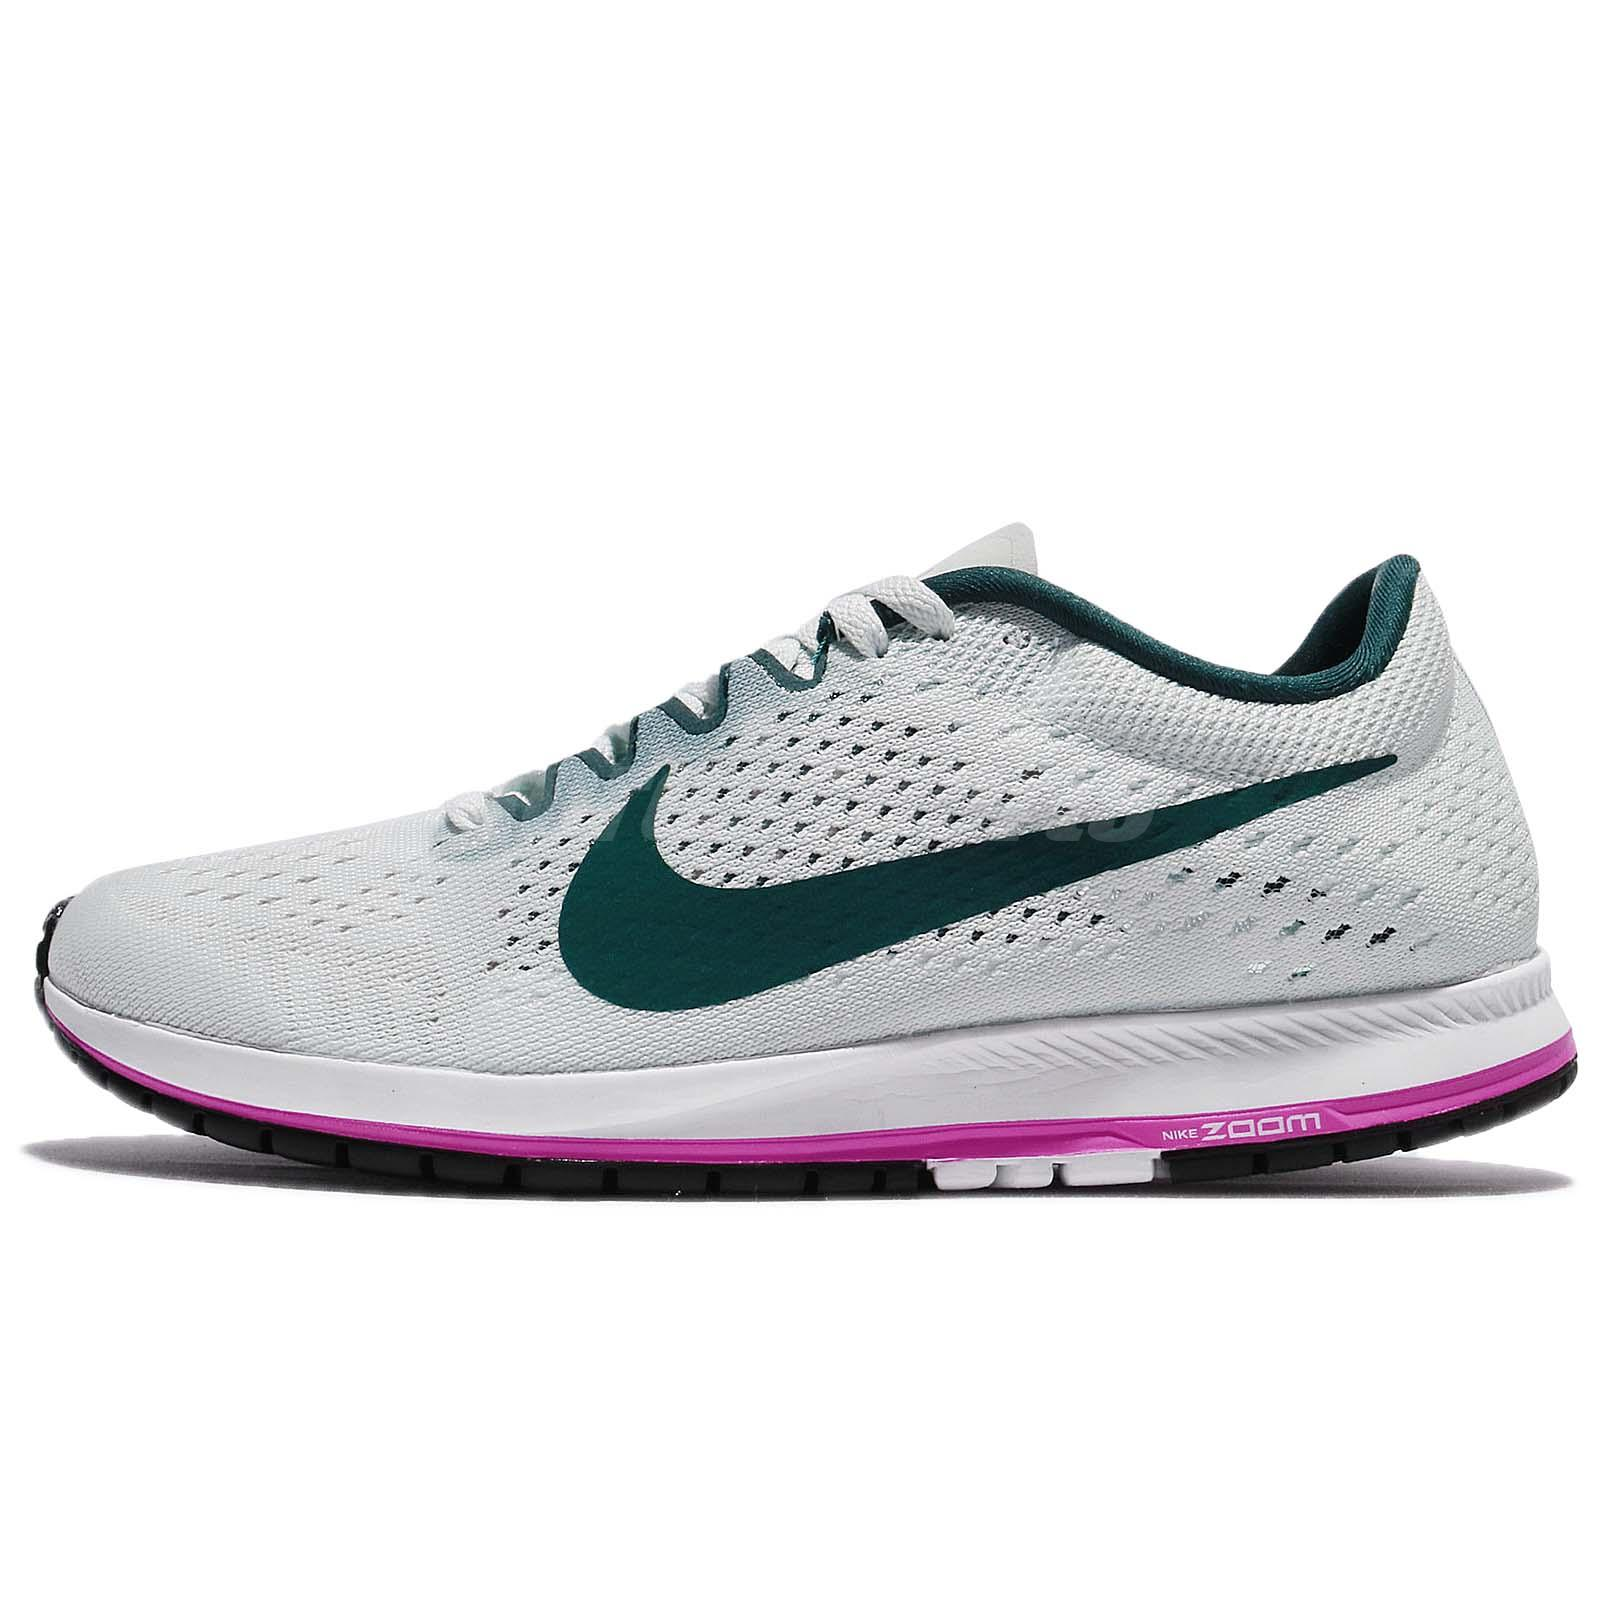 the best attitude 6f075 054ac Nike Zoom Streak 6 Barely Grey Deep Jungle Men Running Shoes Sneakers 831413 -005